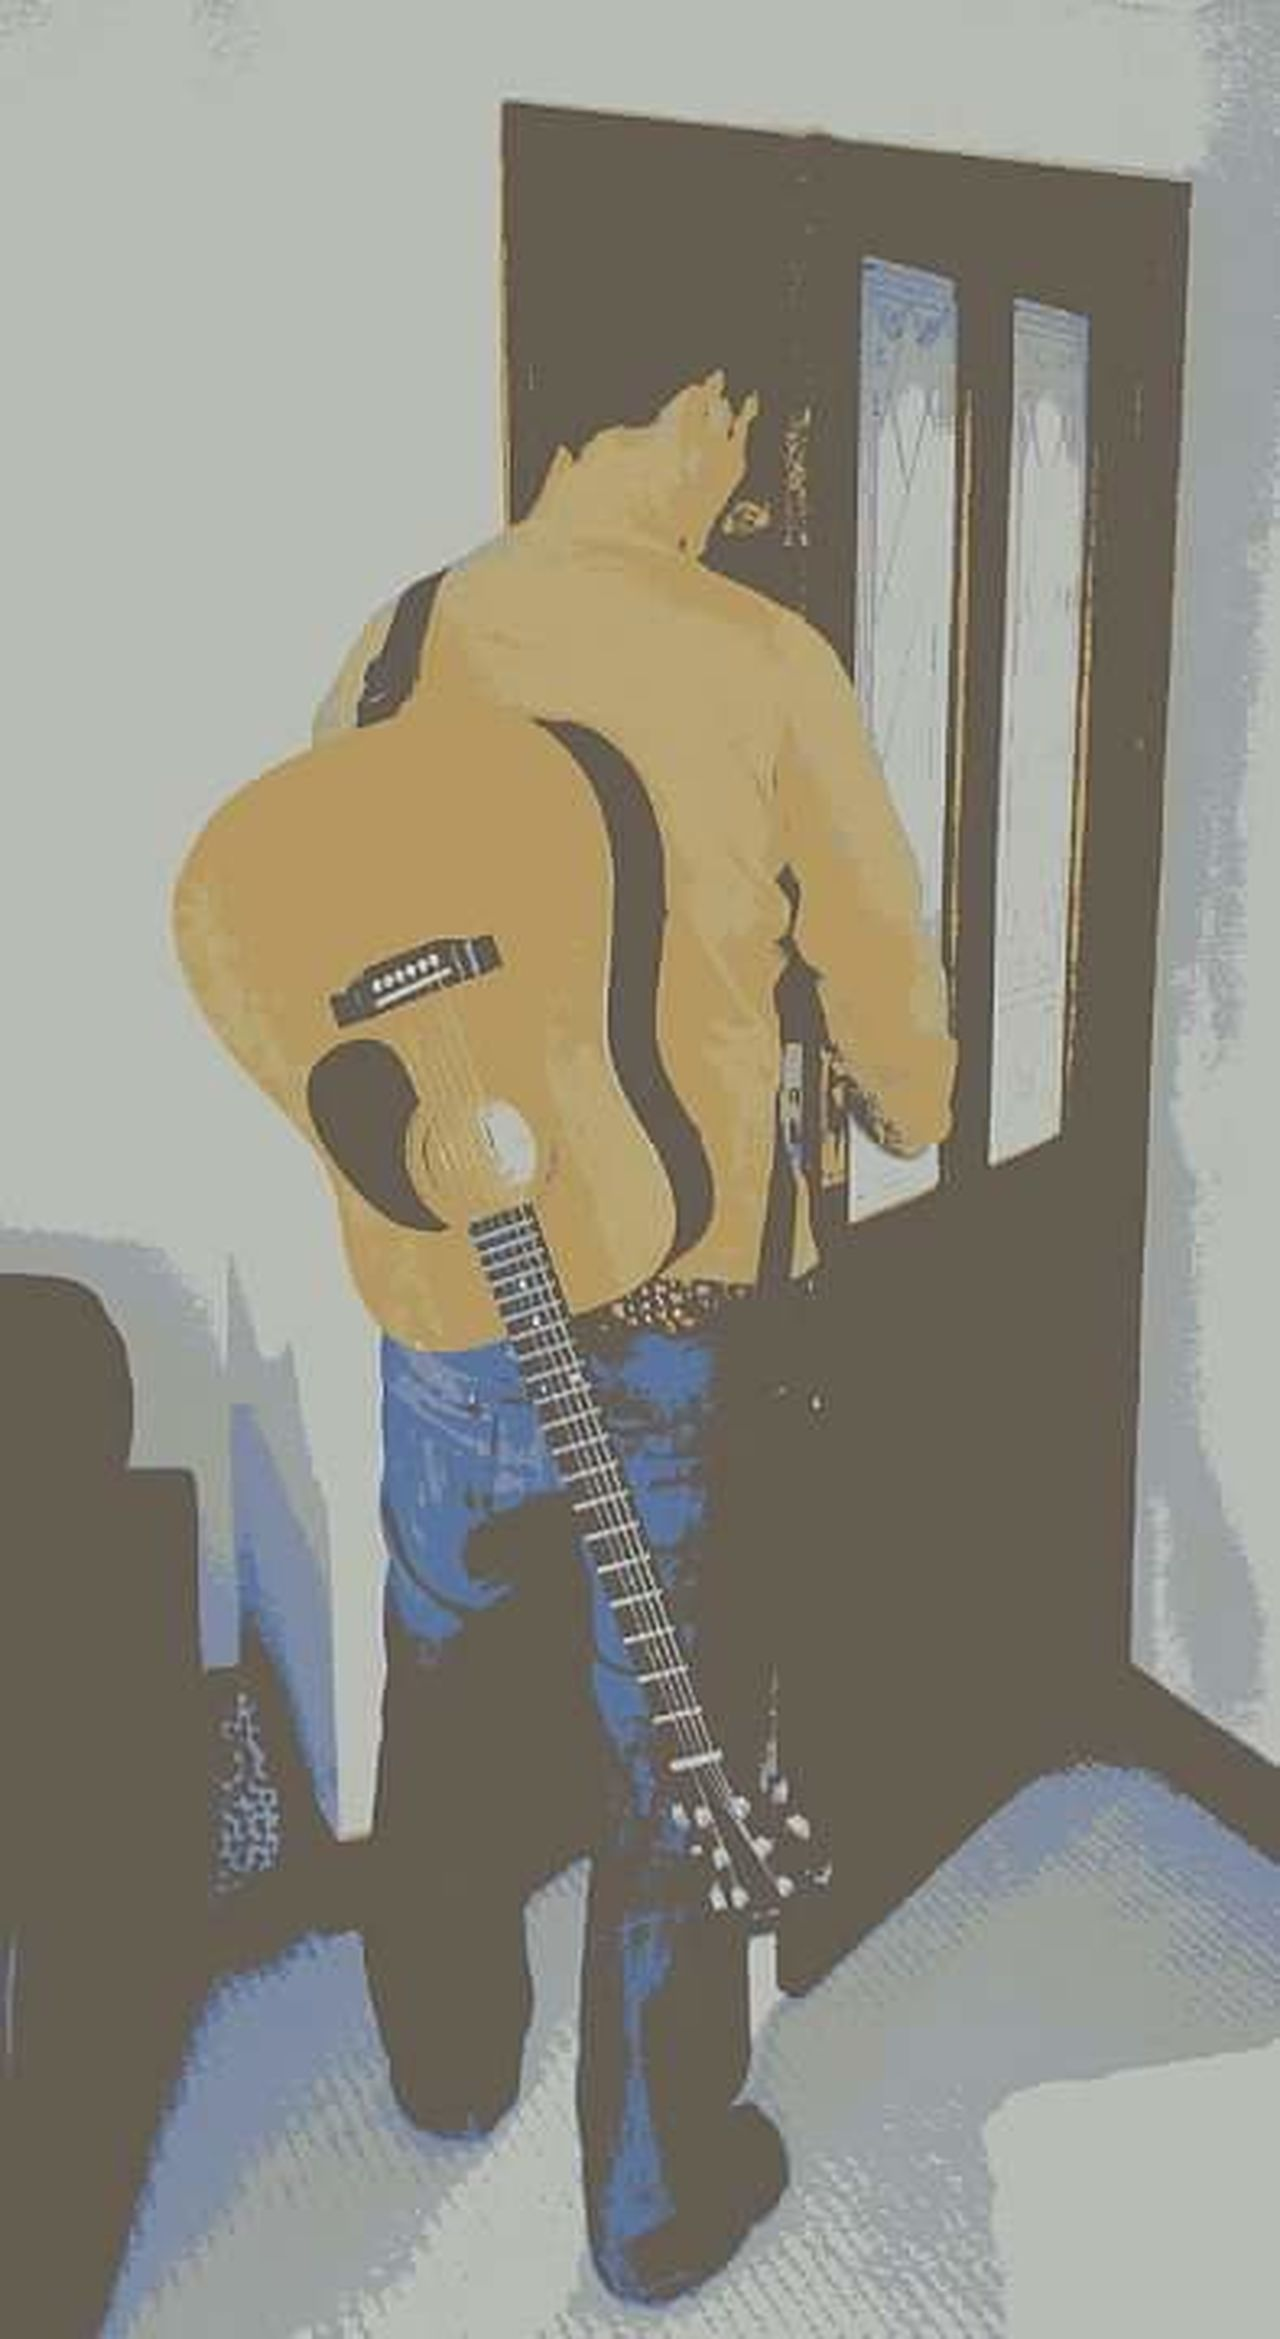 Only Men One Person Guitar Adult Indoors  From The Back Acoustic Acoustic Guitar Leisure Activity Leisure